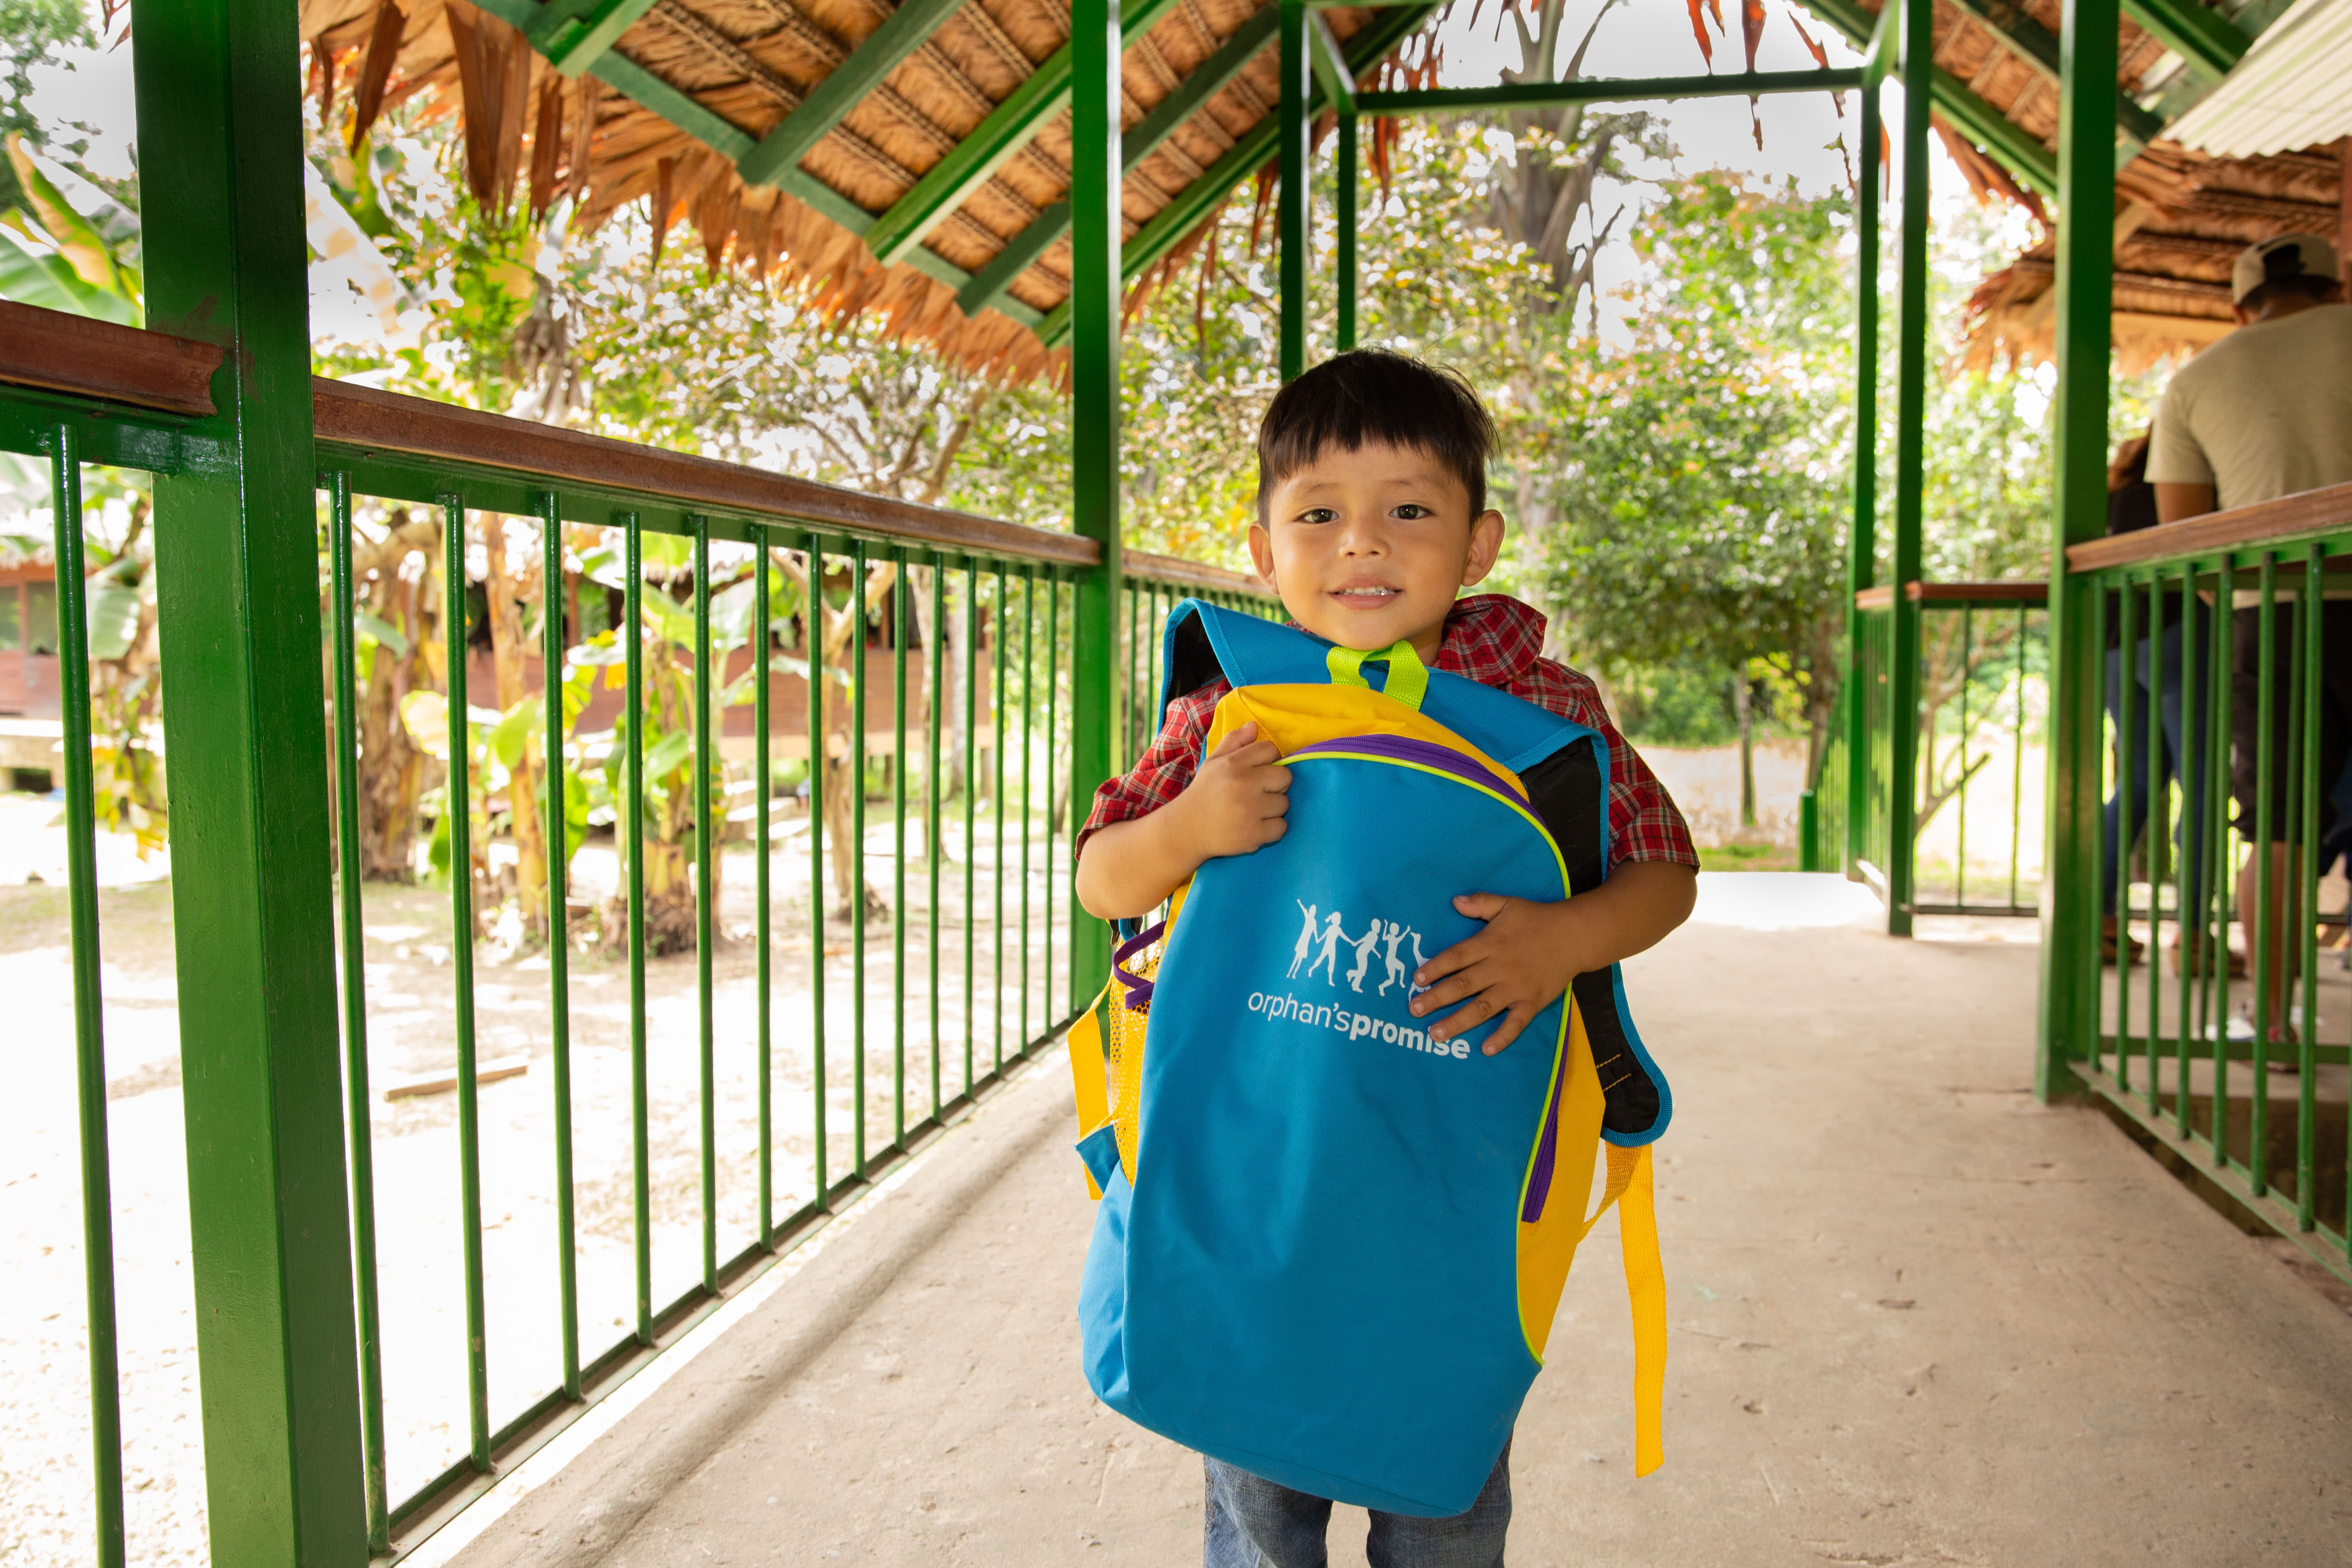 Orphan's Promise | Backpack Campaign | Education